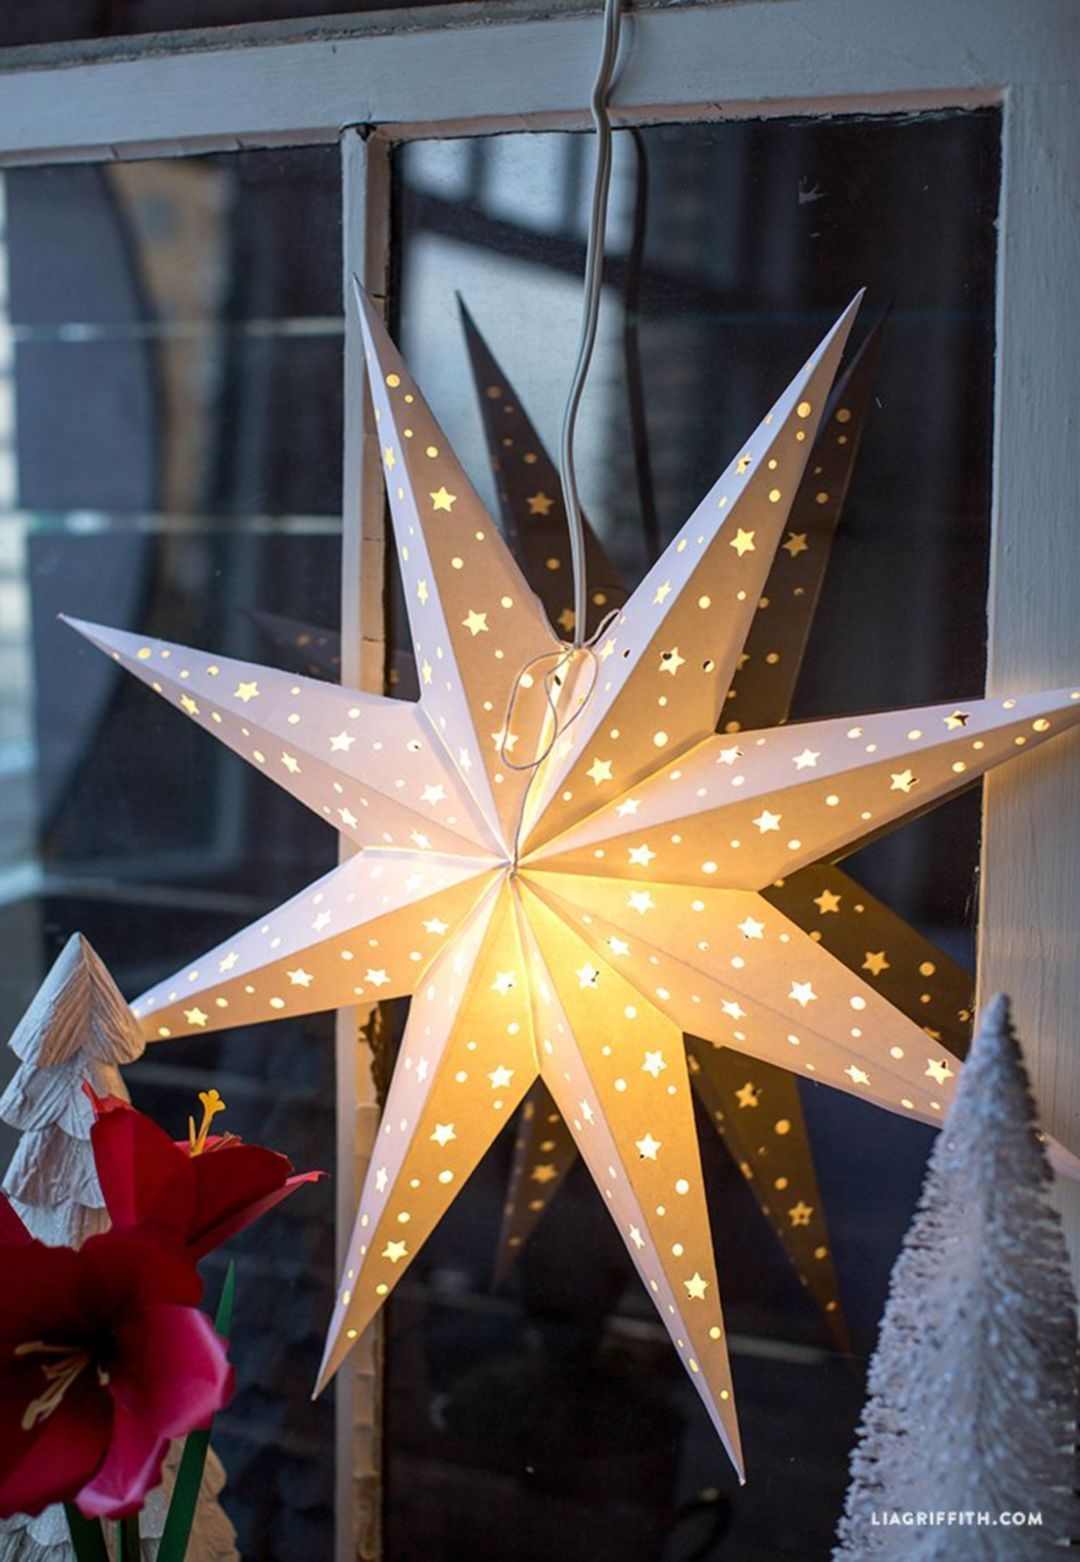 25+ DIY Christmas Decoration Ideas With Origami Paper images